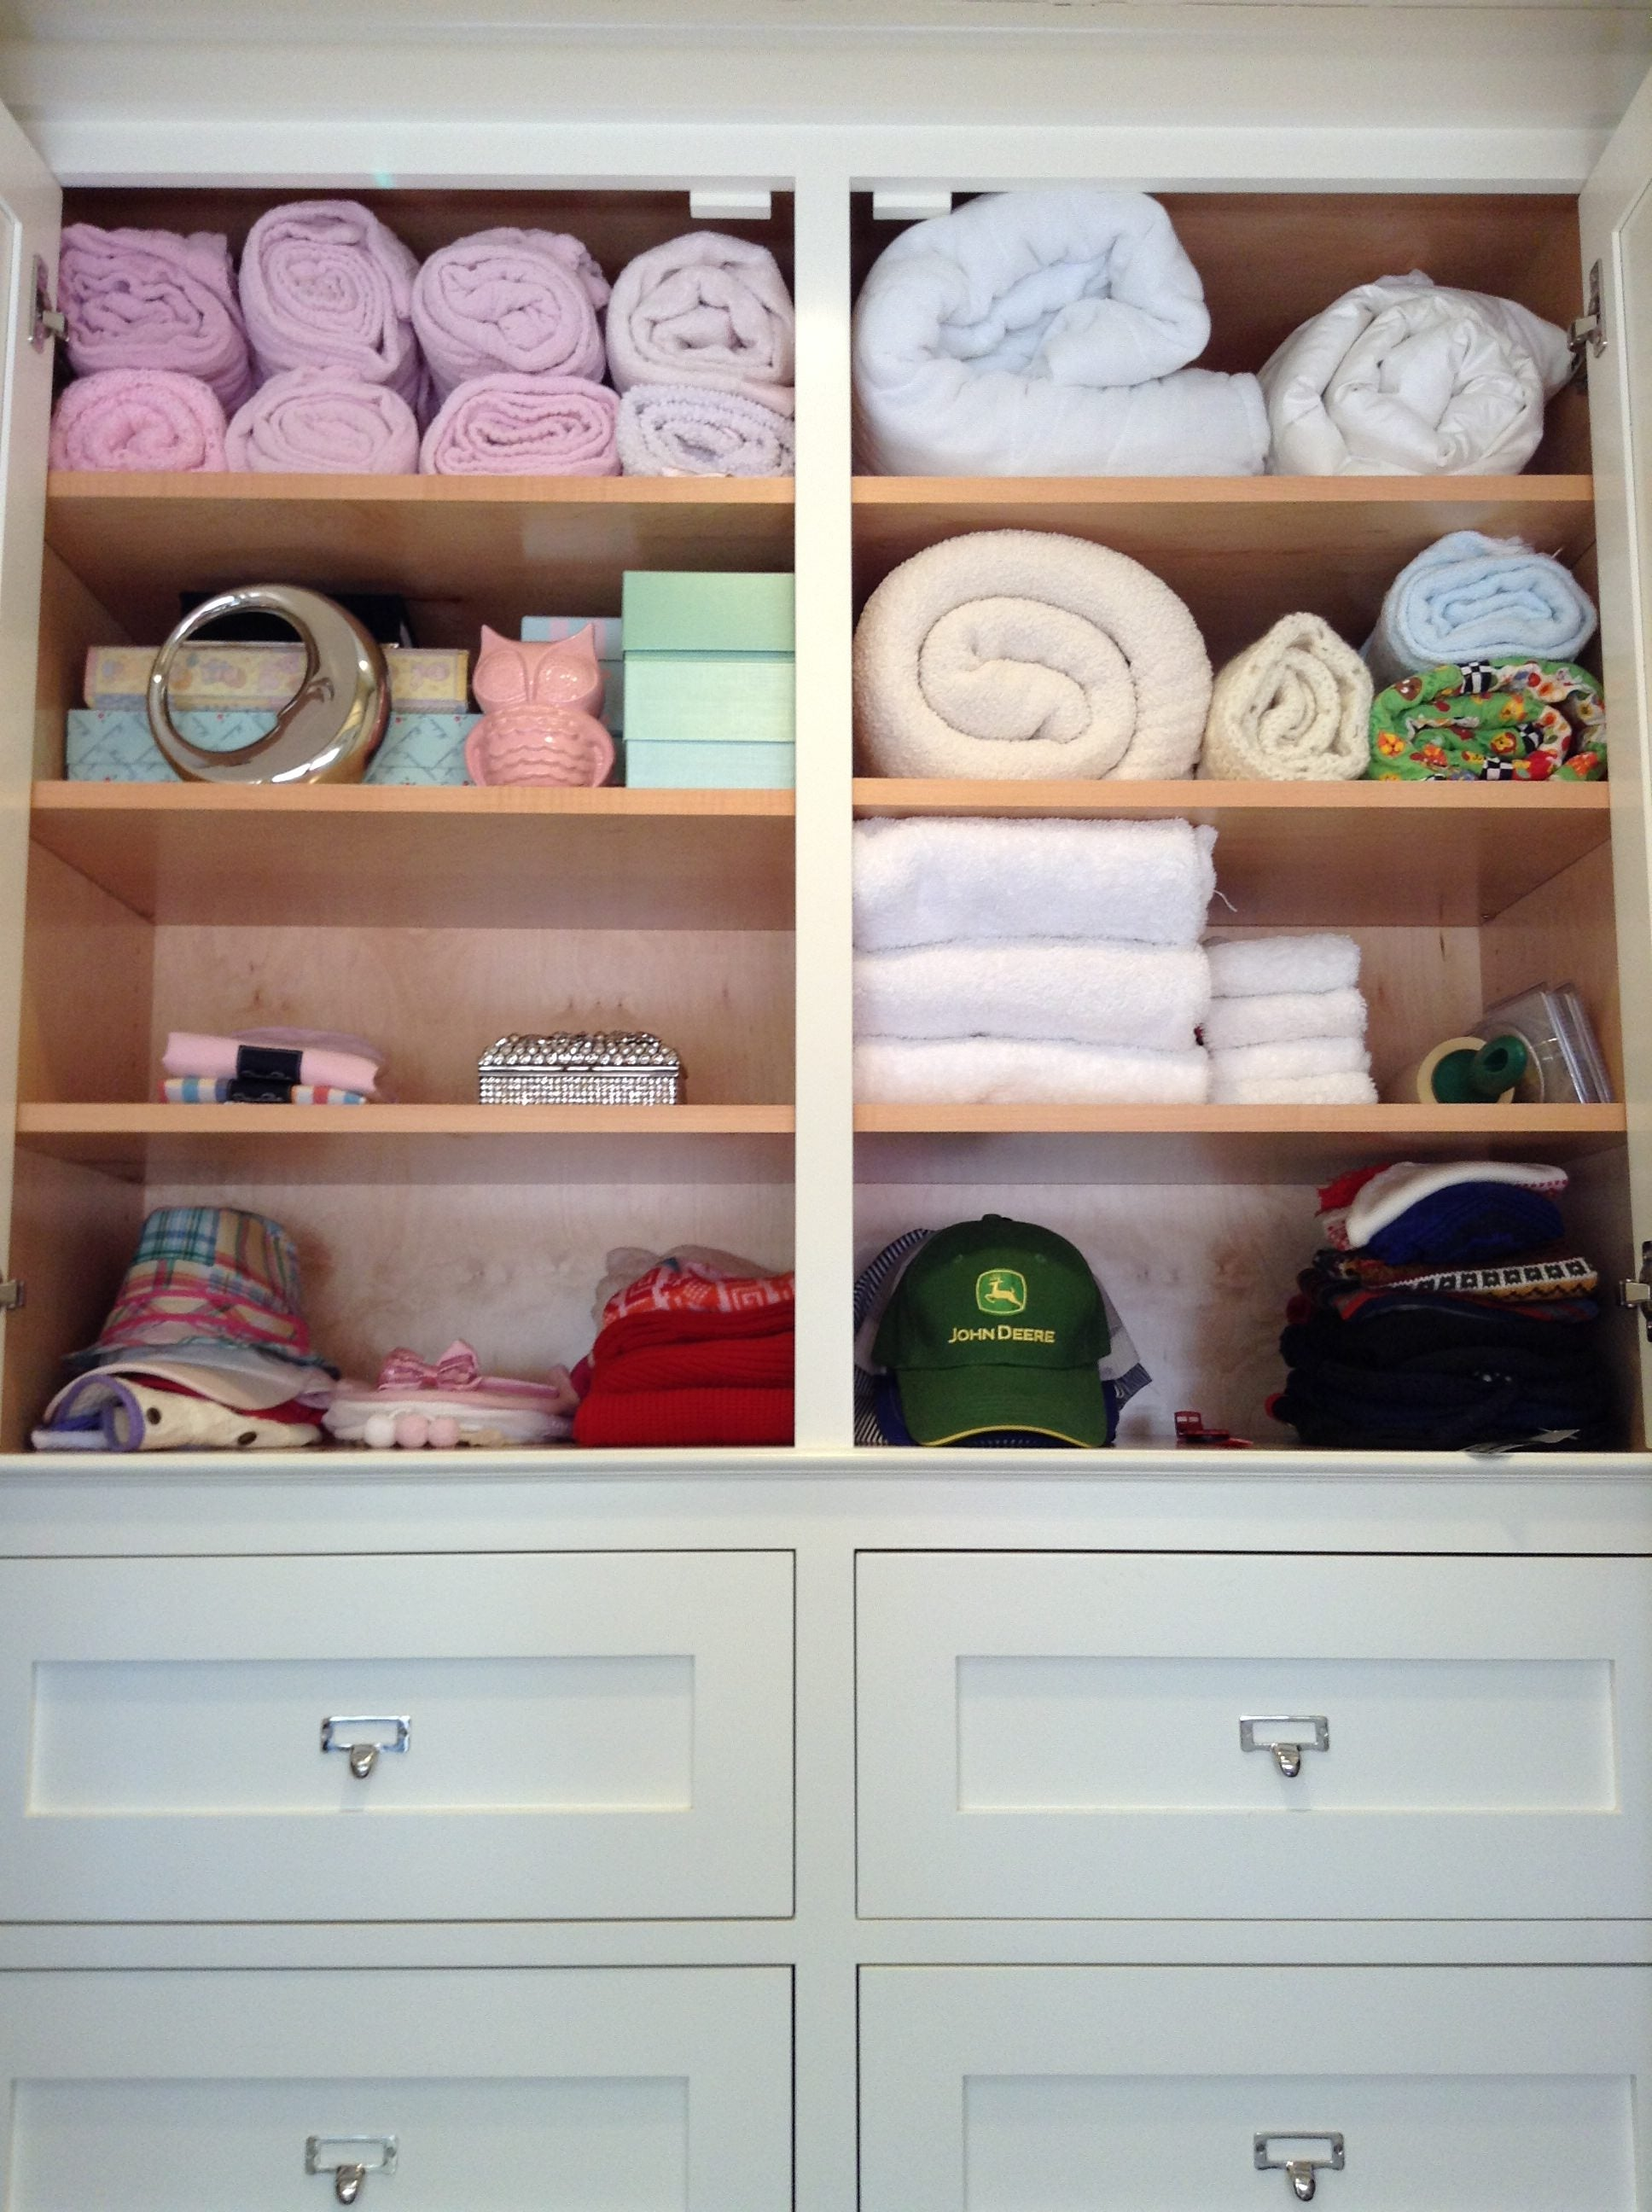 how to organize a kids closet, kids closet, childrens closet, brother and sister shared closet, brother and sister, siblings sharing, how to organize kids stuff, organize kids belongings, pink and blue closet, his and her closet, tips to organize for baby, how to organize baby, organized baby, closet, neat method